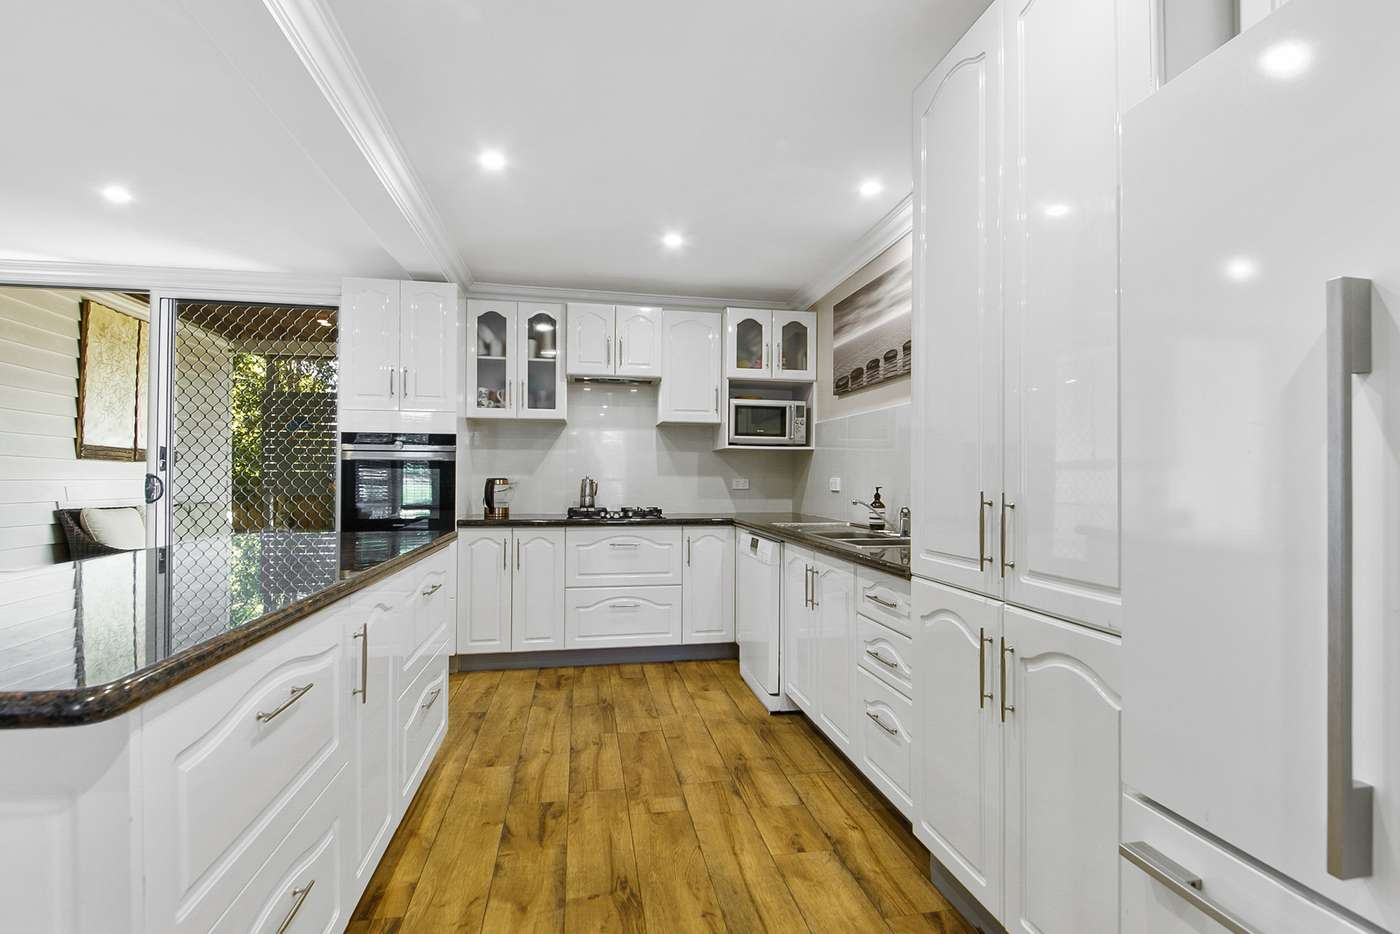 Fifth view of Homely house listing, 1 Beryl Crescent, Holland Park QLD 4121